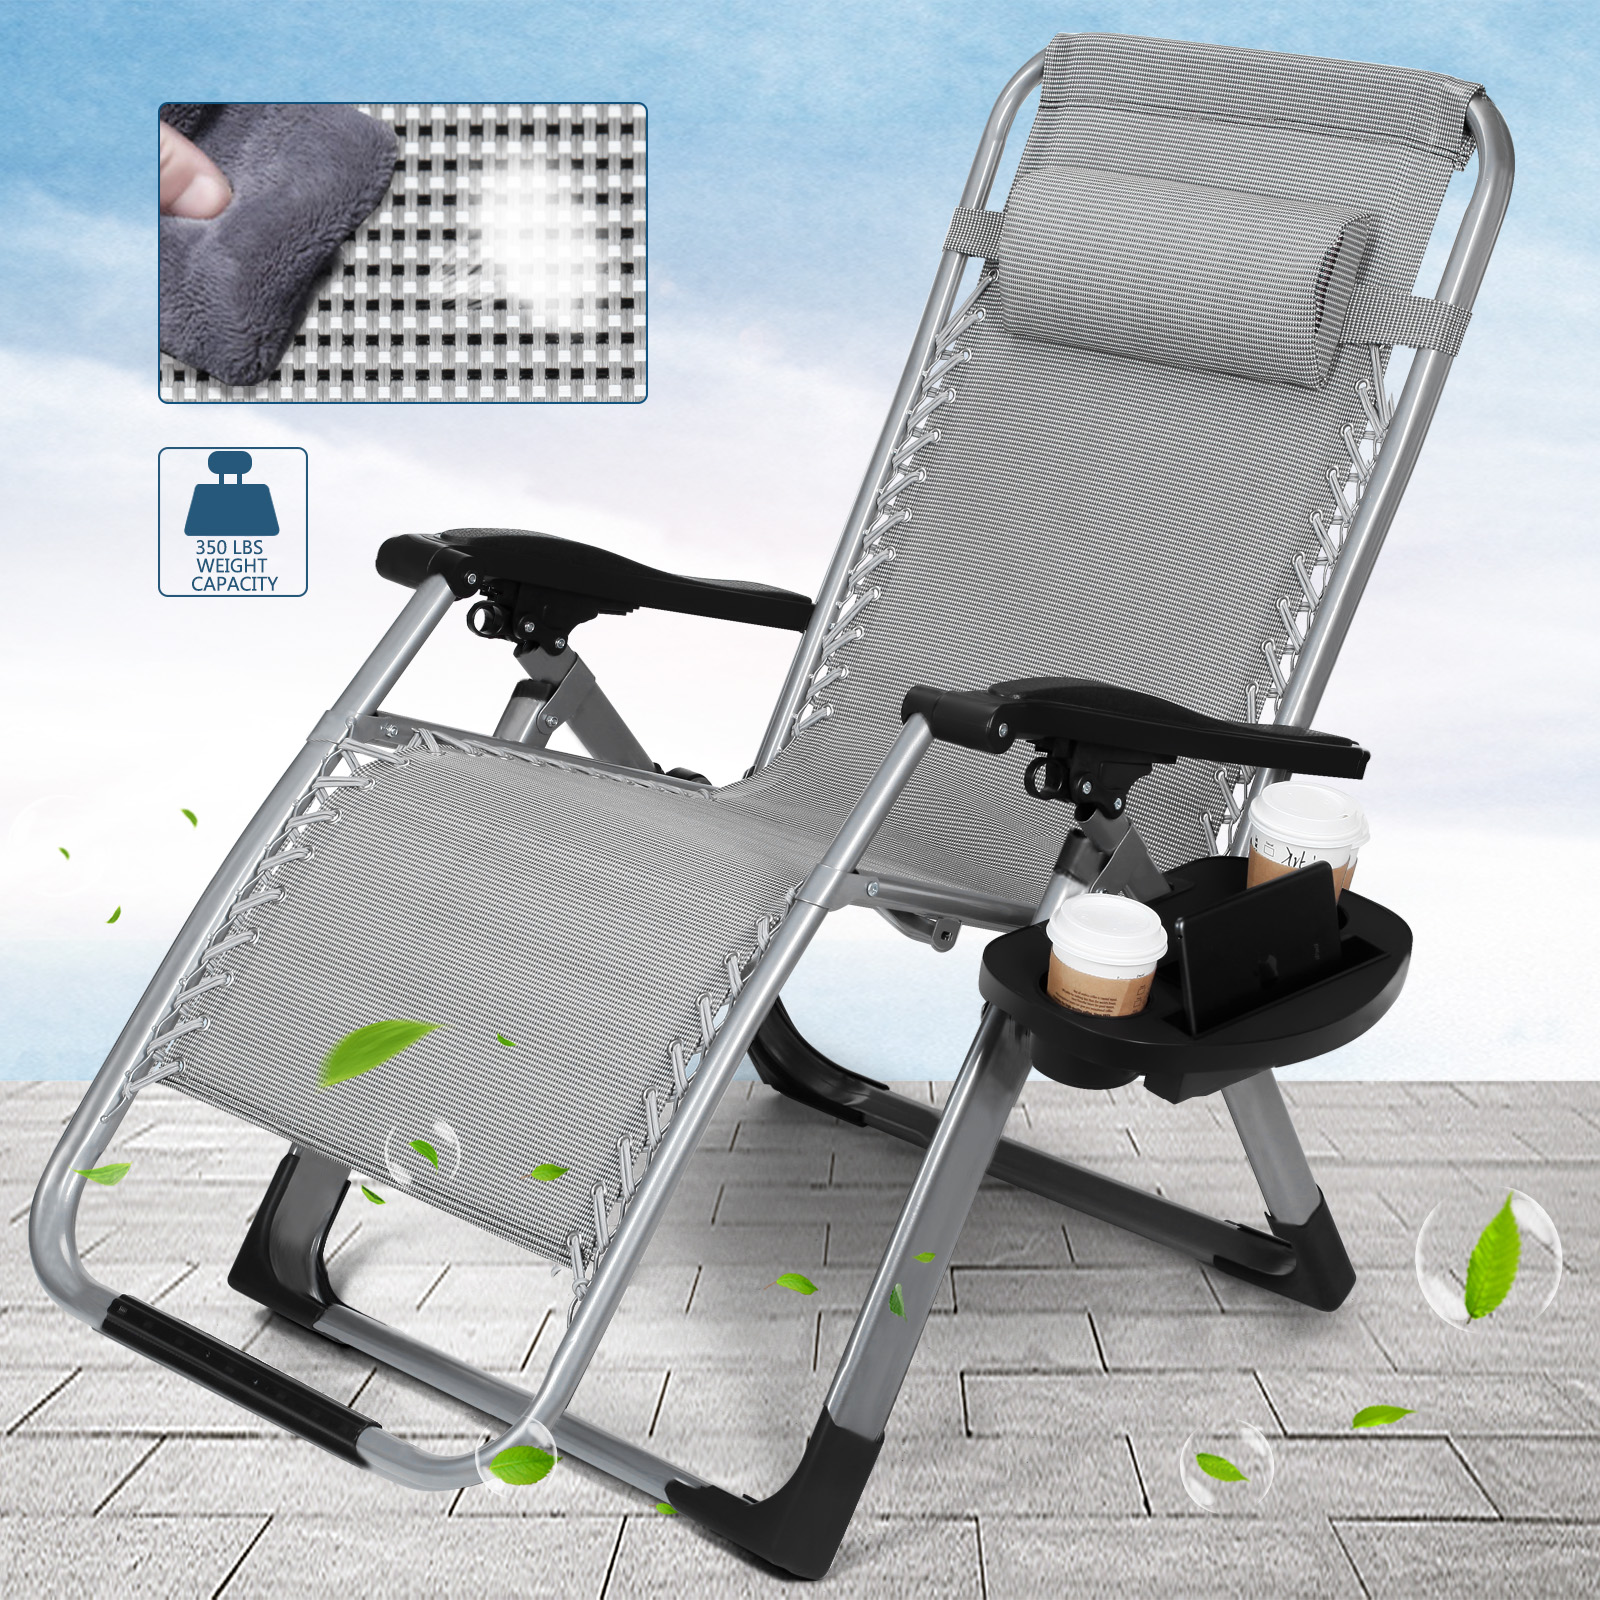 Pleasing Details About Portable Zero Gravity Chair Folding Recliner Camping Chair W Tray Headrest Gift Forskolin Free Trial Chair Design Images Forskolin Free Trialorg